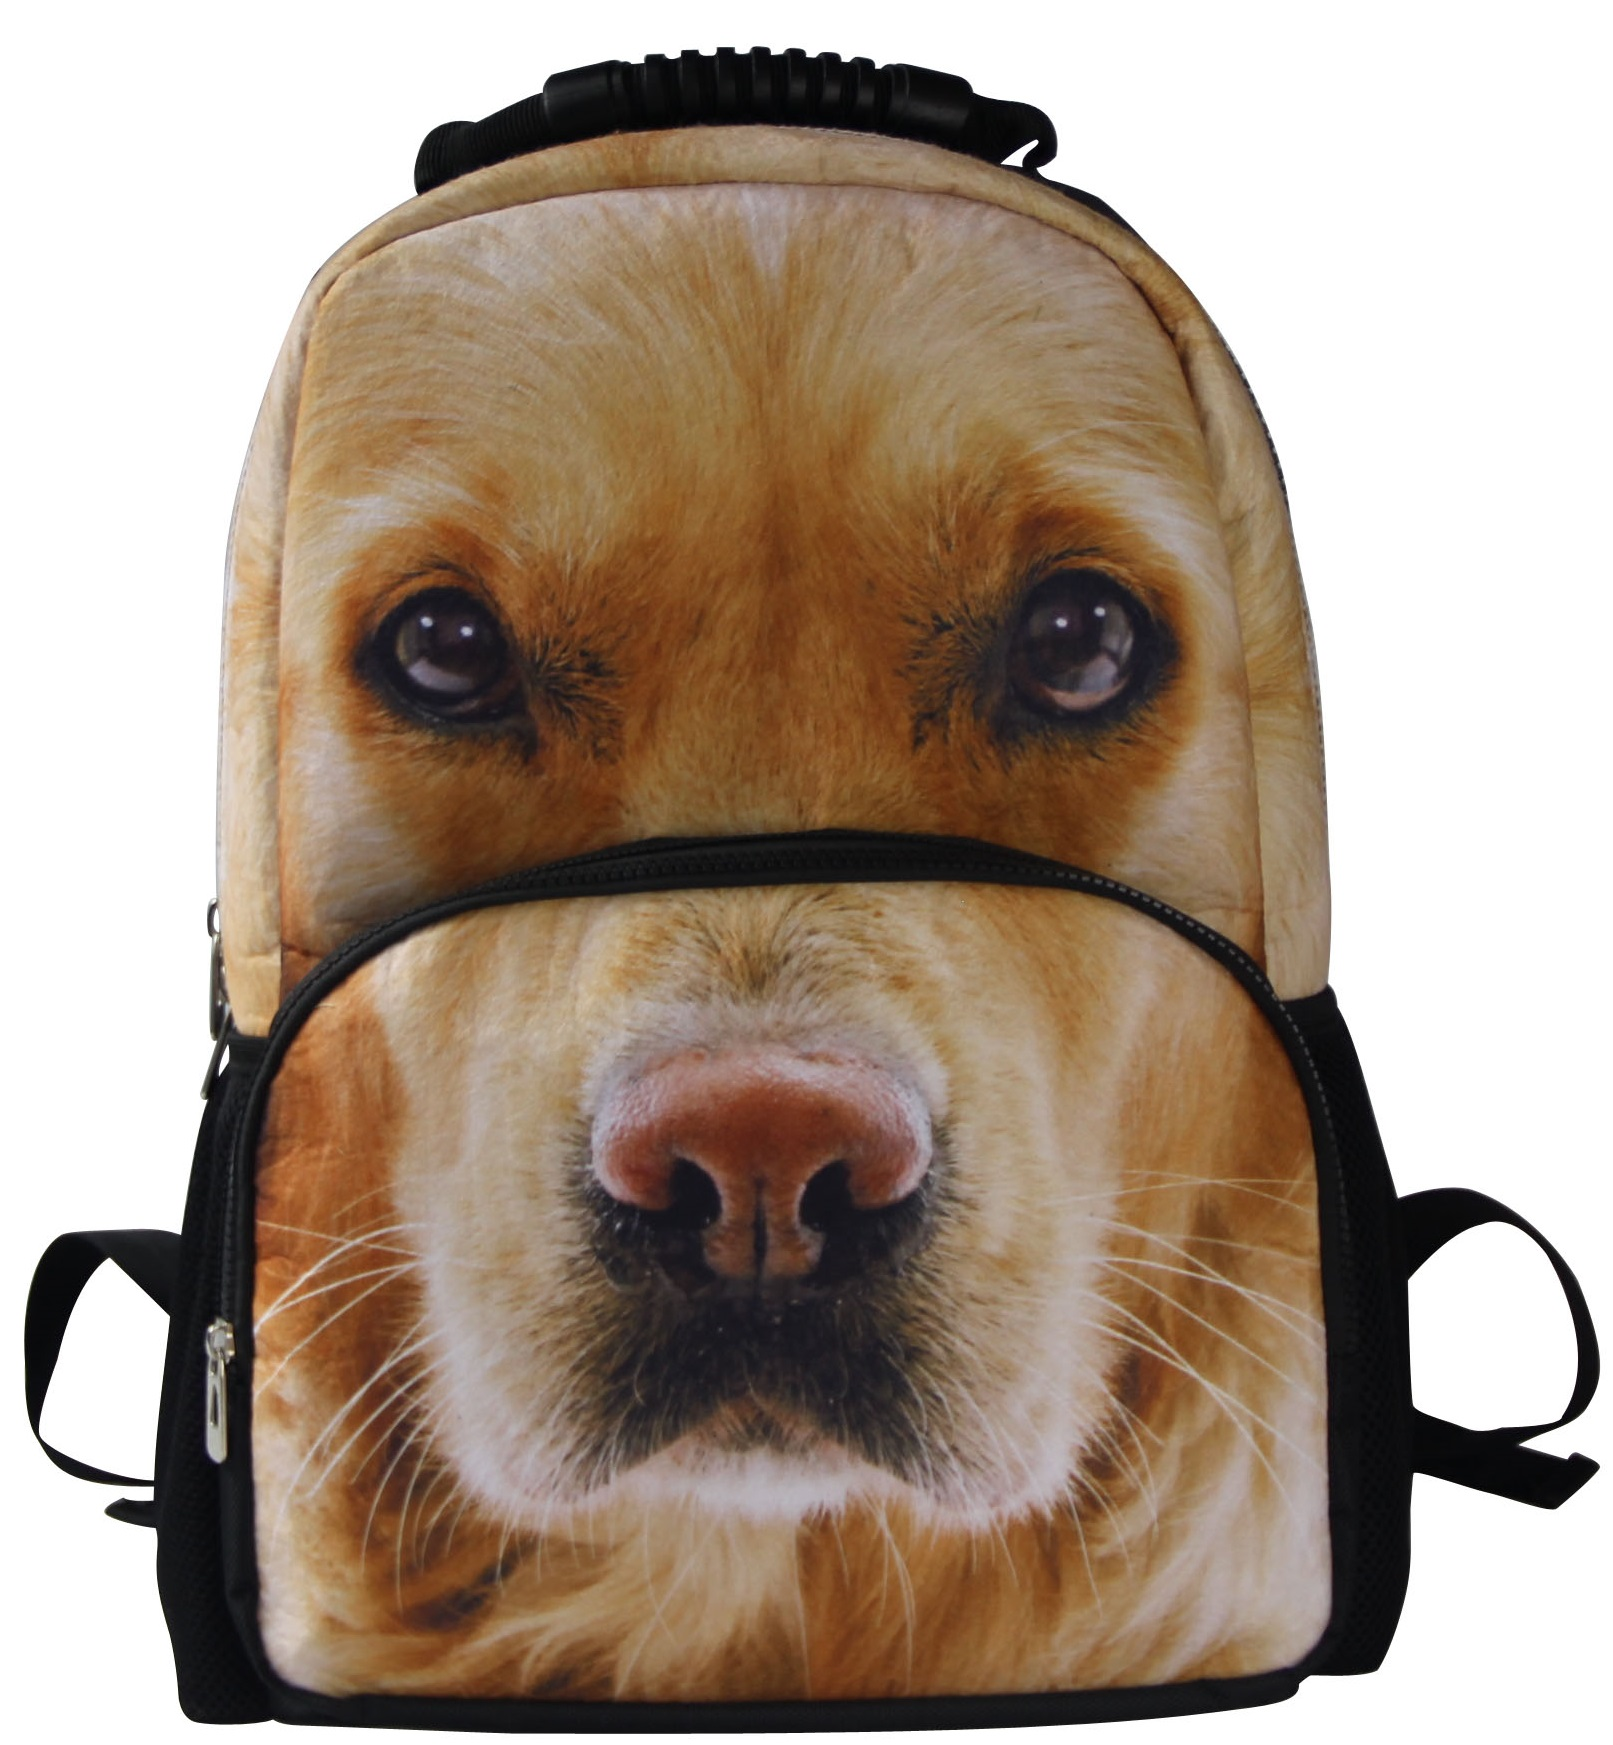 Yellow Lab Dog Backpack 3D Deep Stereographic on Felt Fabric